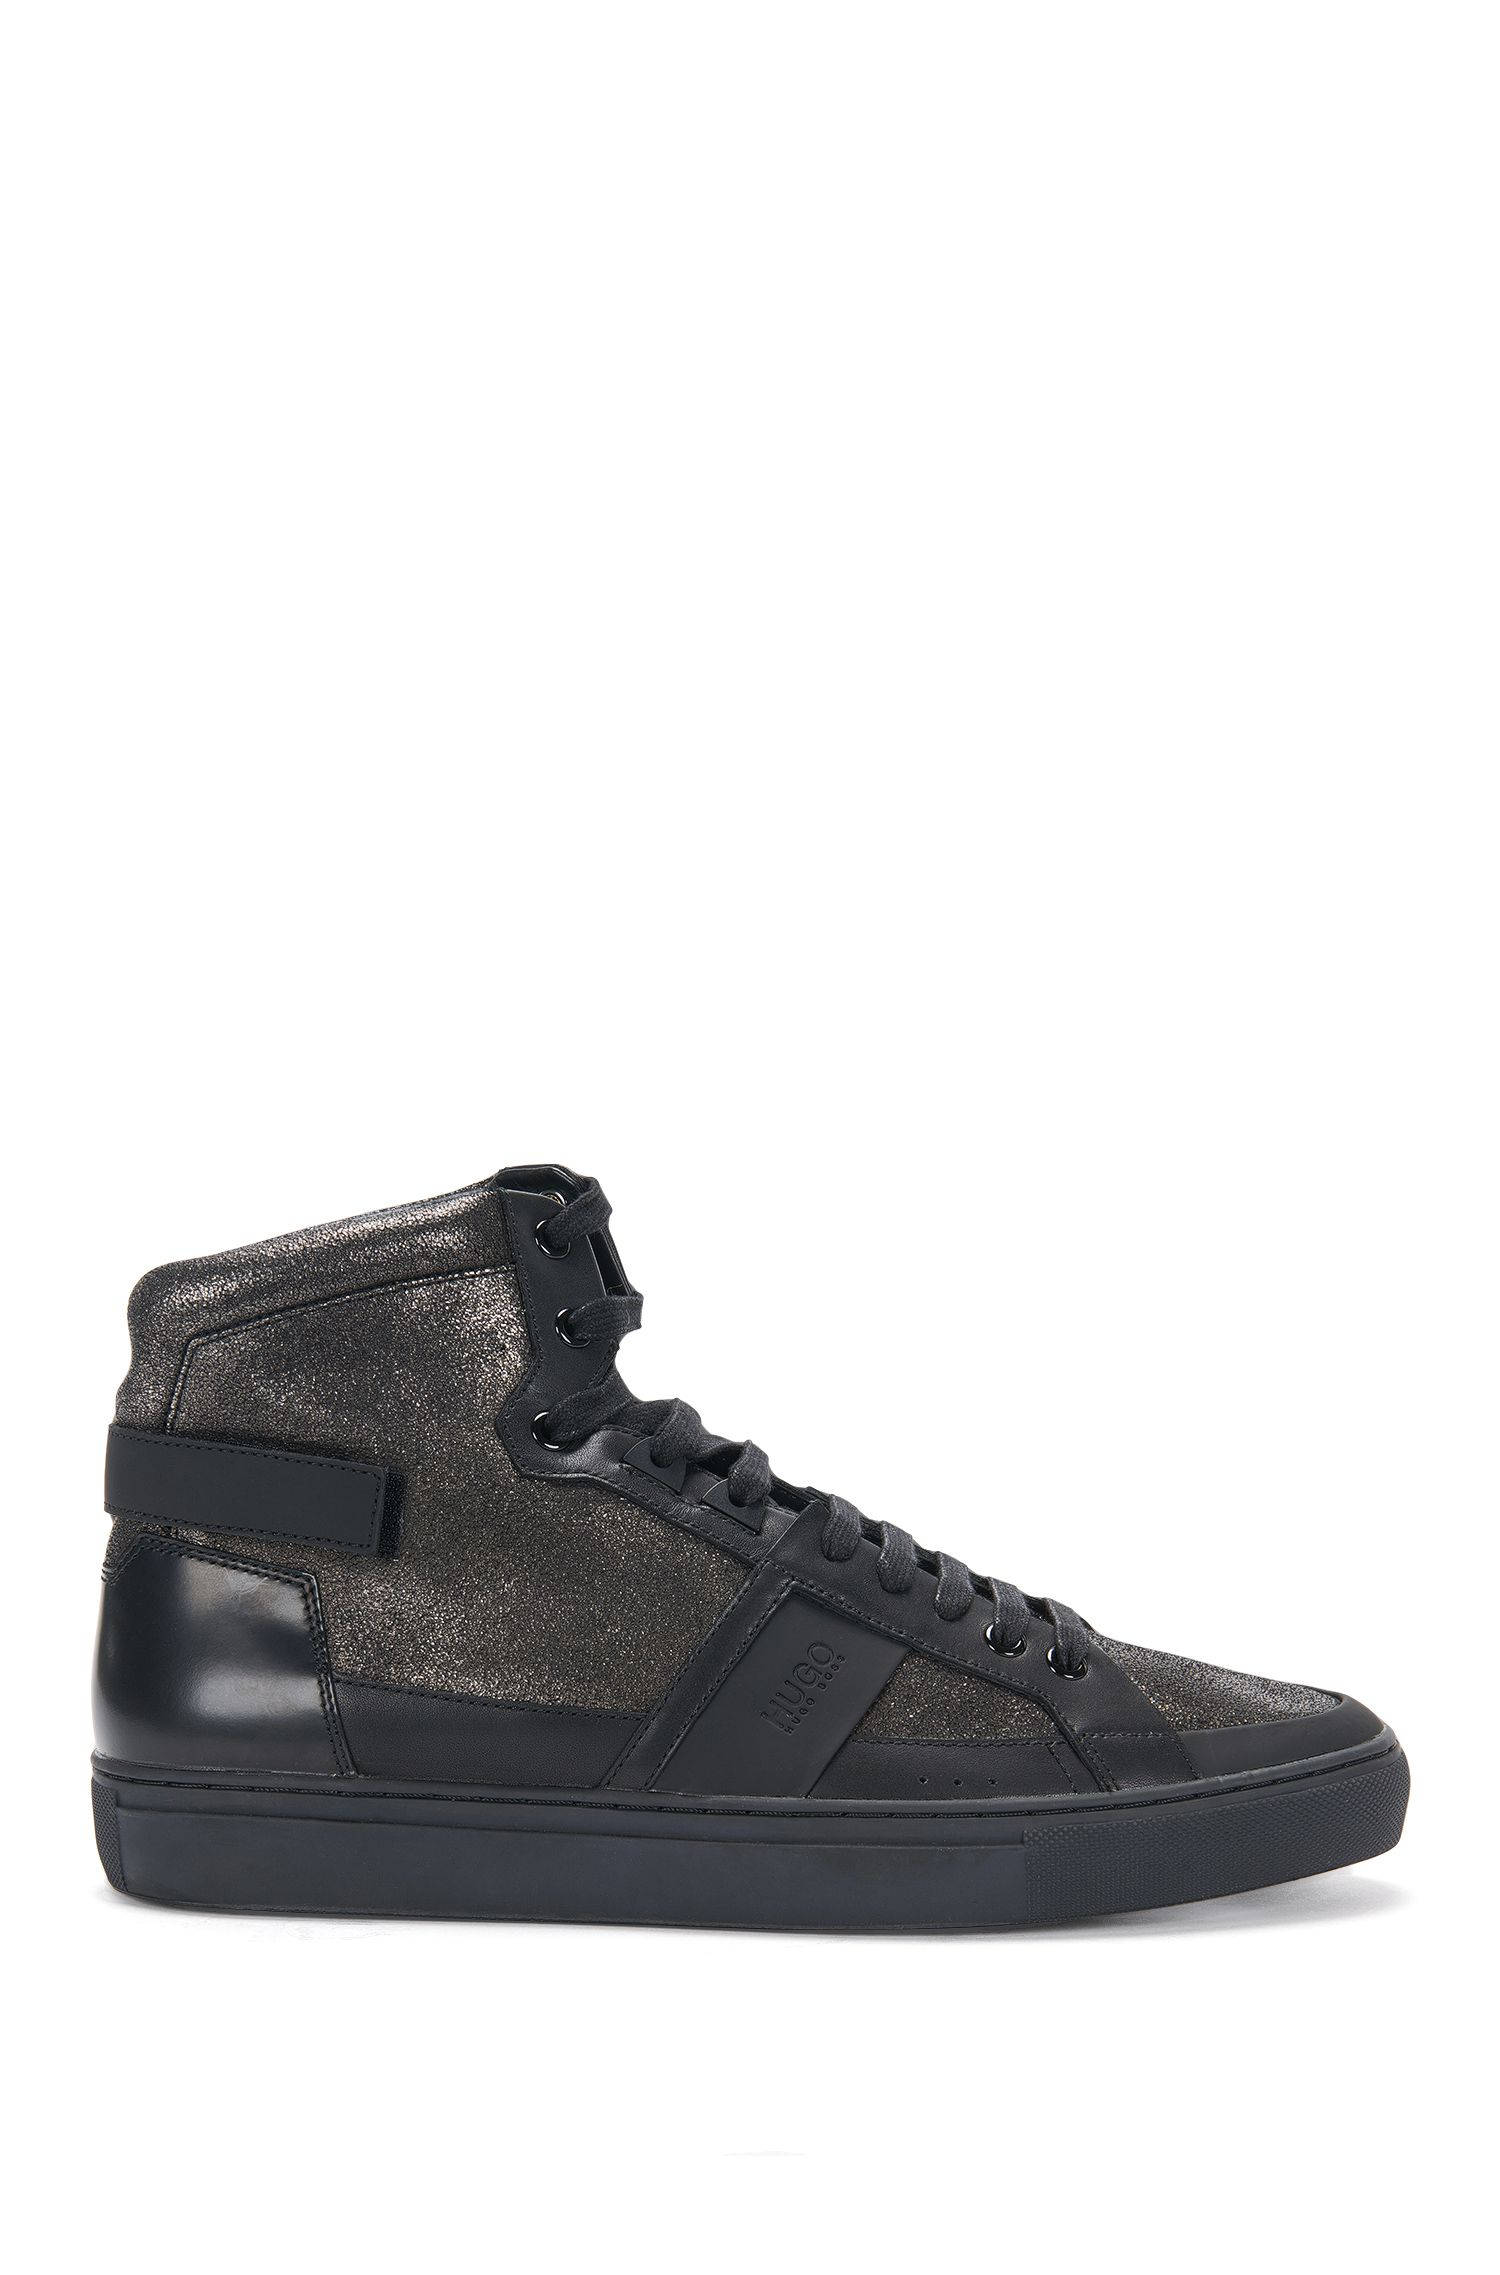 Hoge leren sneakers in metallic look: 'Futurism_Hito_mxgl'